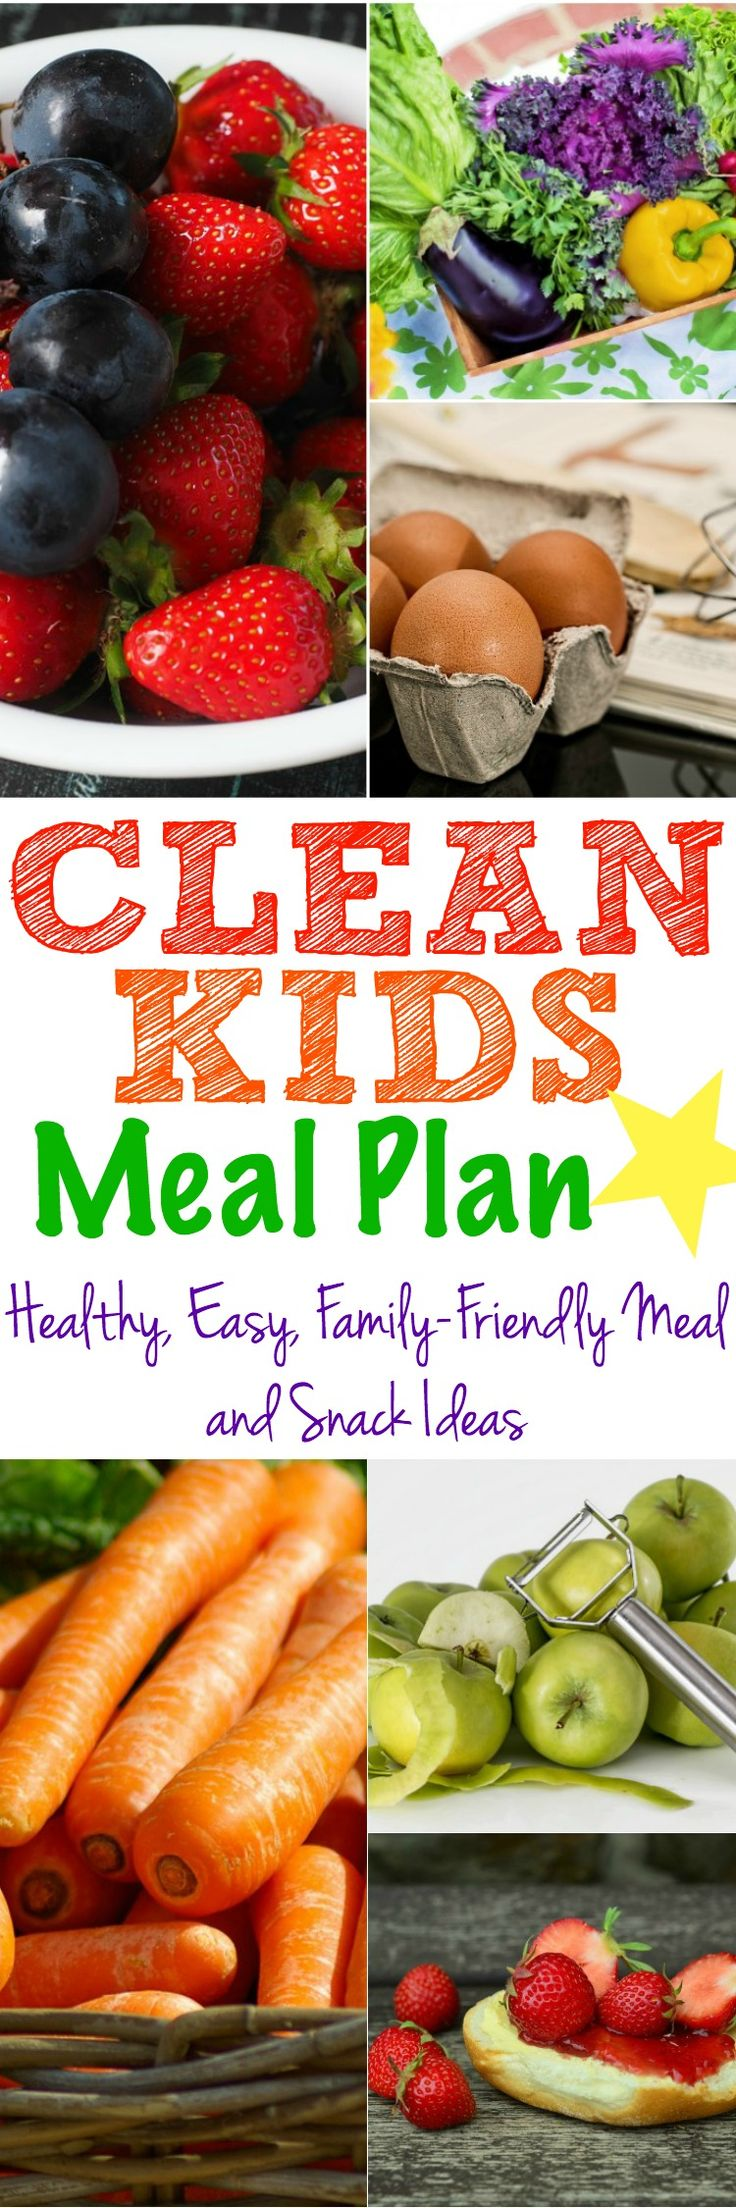 This Clean Kids Meal Plan is full of over a week's worth of healthy, clean eating breakfasts, lunches, dinners, and snack ideas that the whole family will love!